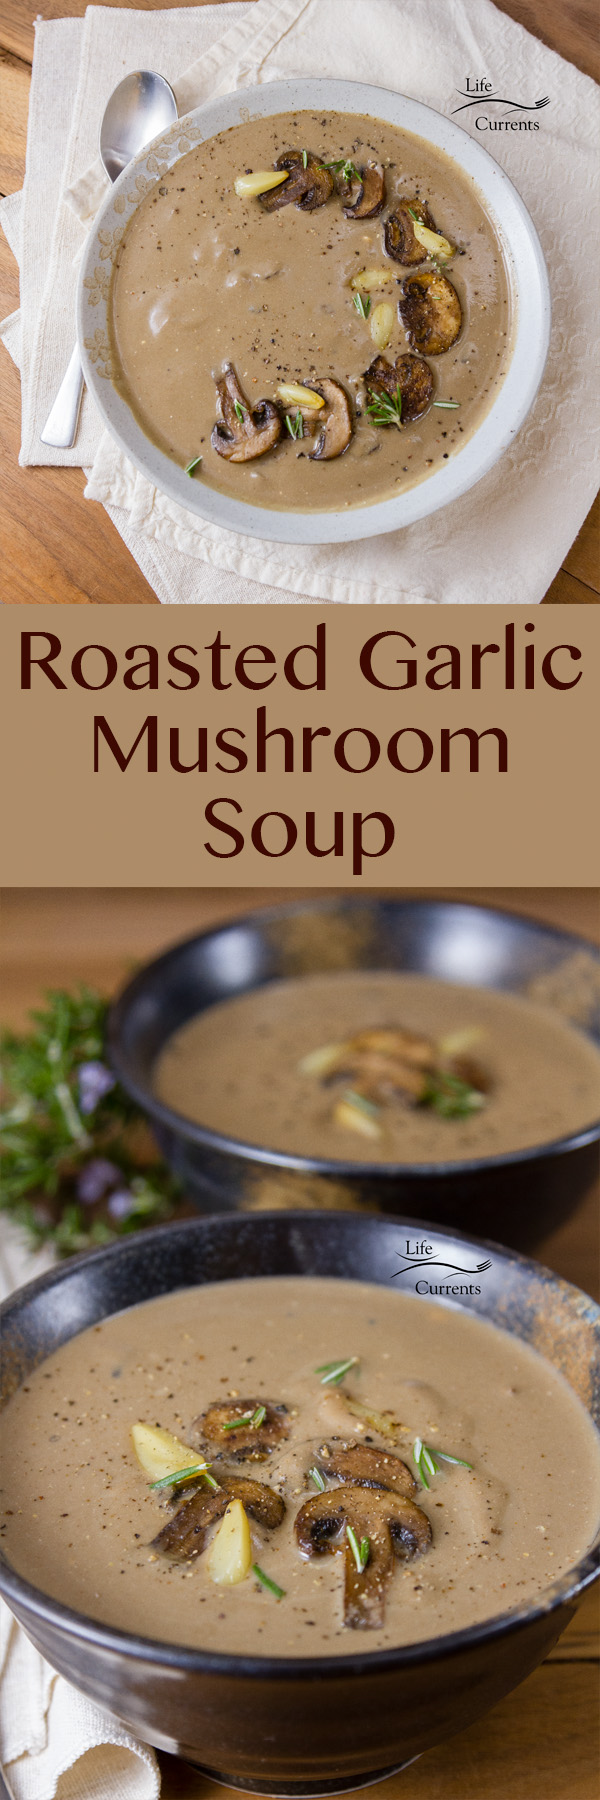 Creamy delicious, thick and hearty, mushroom soup, made even more delicious with earthy roasted garlic. This Roasted Garlic Mushroom Soup is what you want on a chilly night.